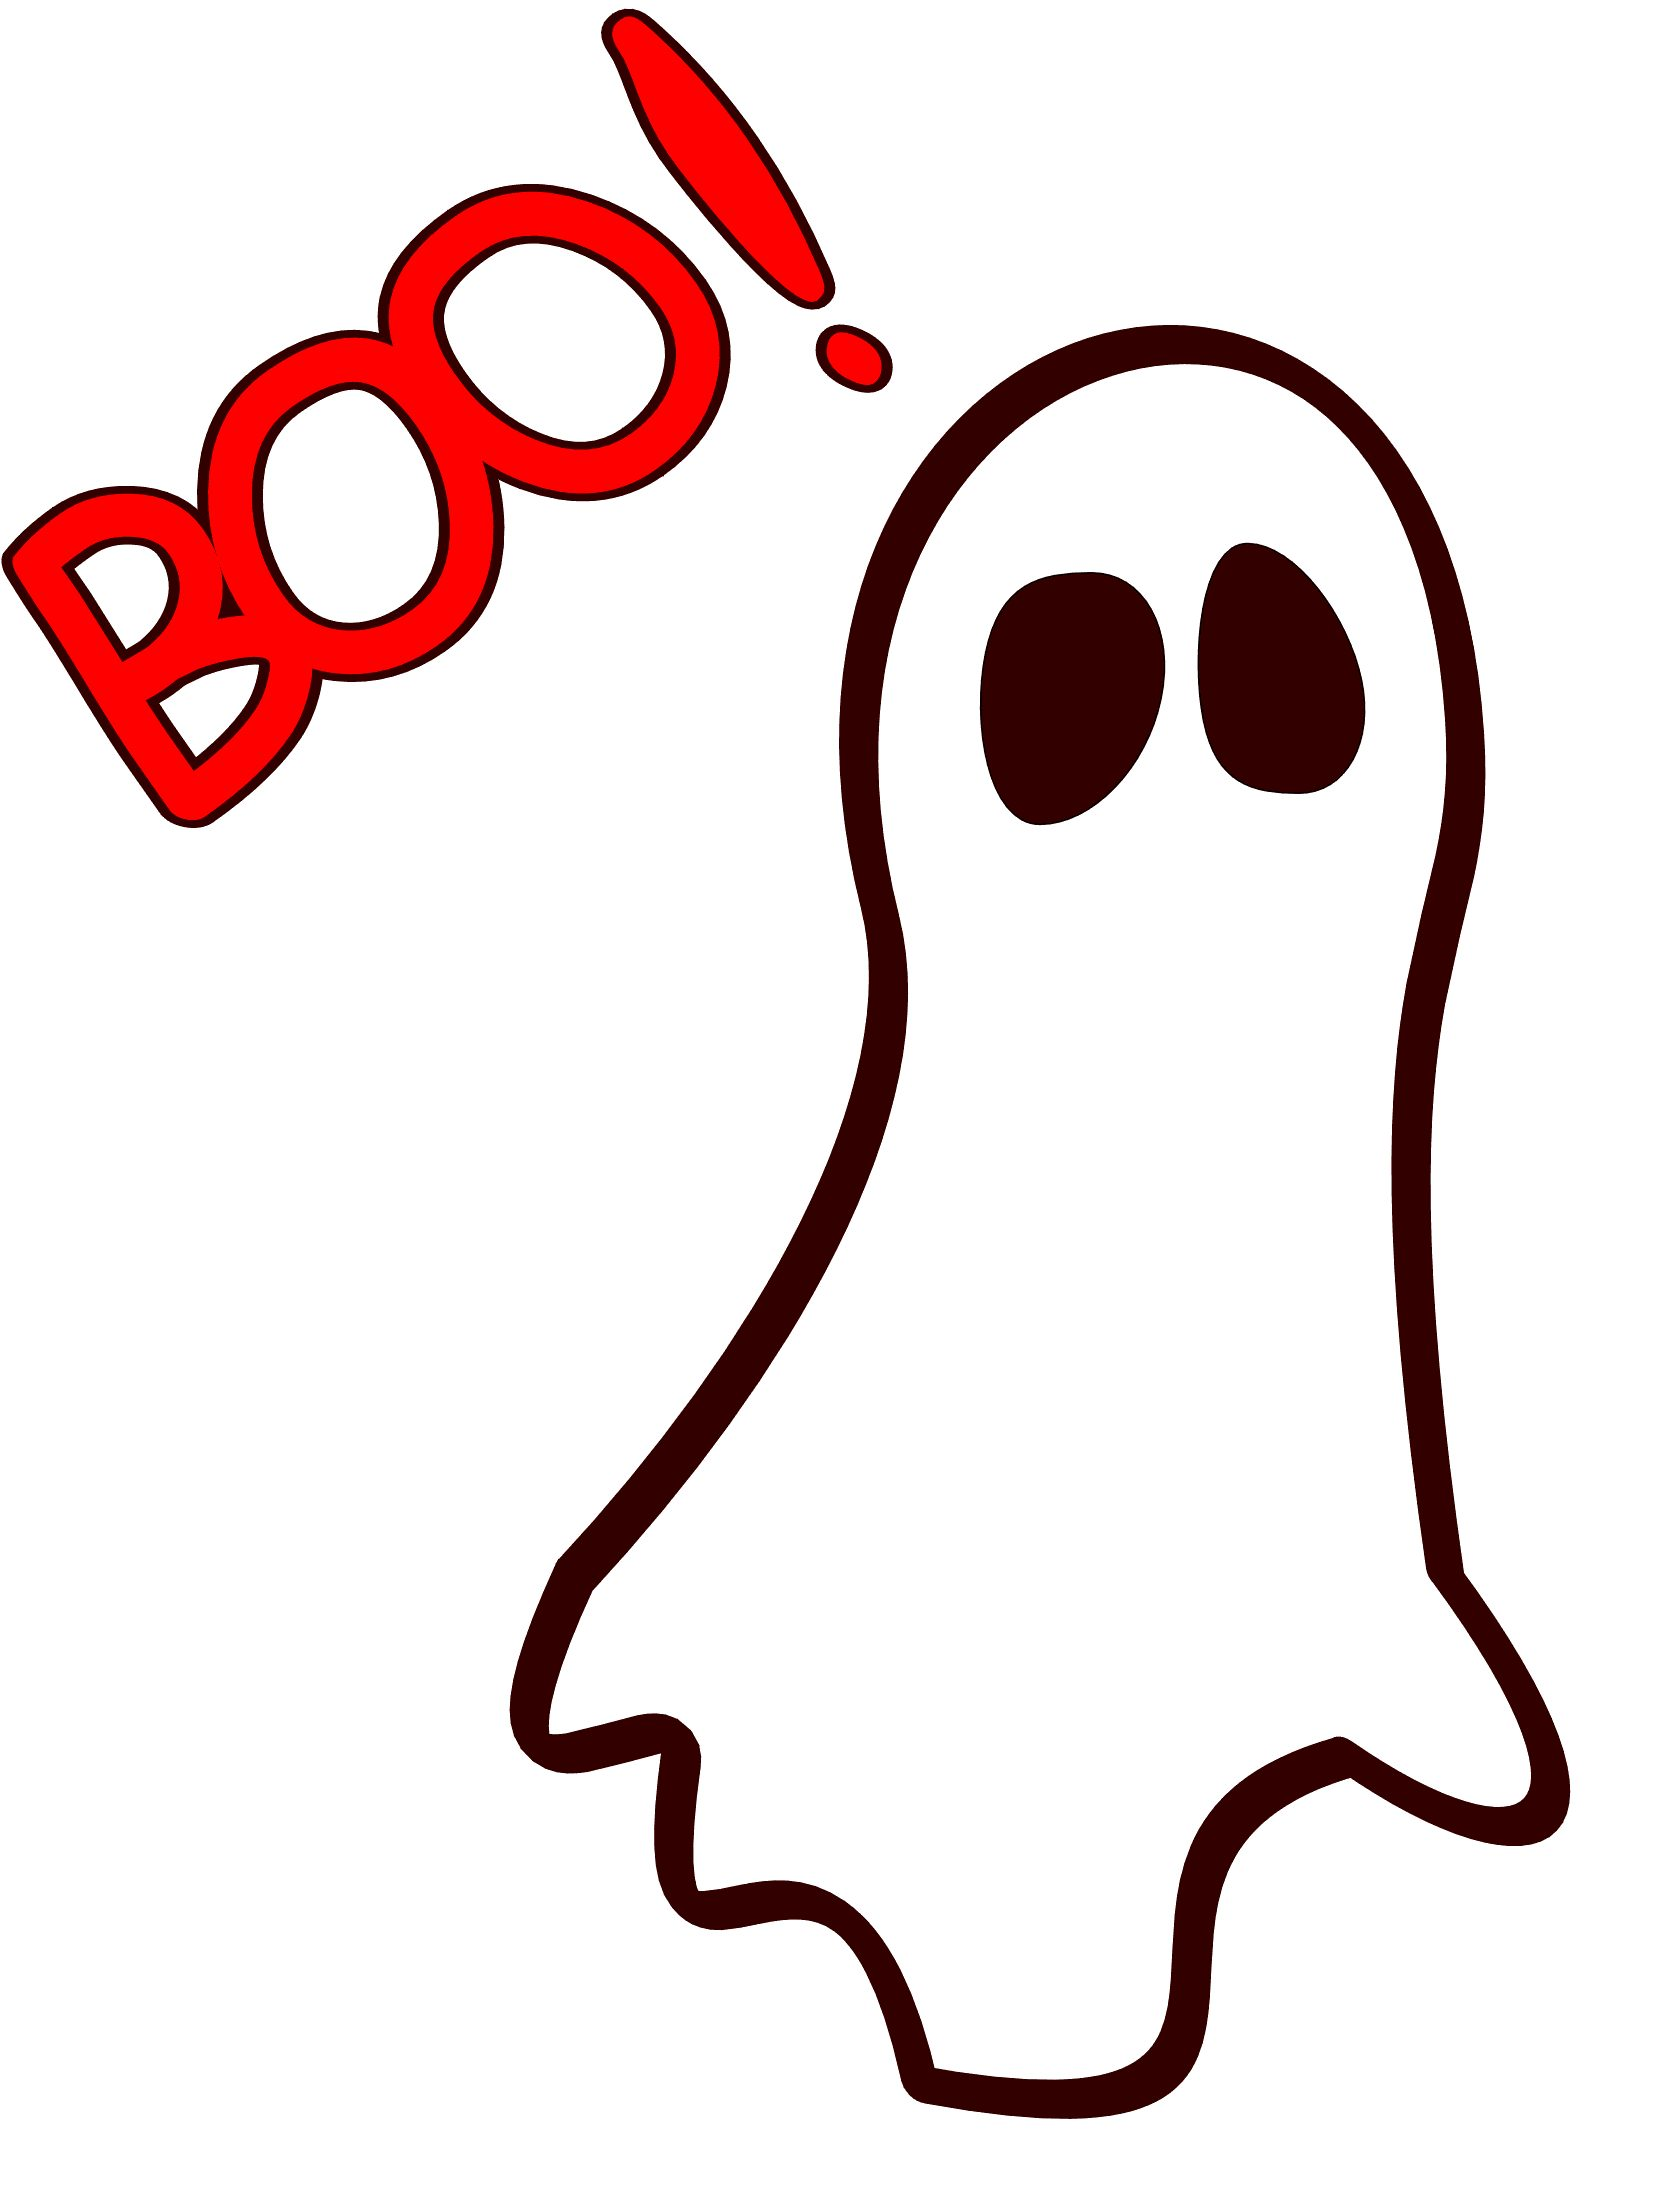 Ghost clipart for ghosting graphic library library 22+ Boo Clip Art | ClipartLook graphic library library